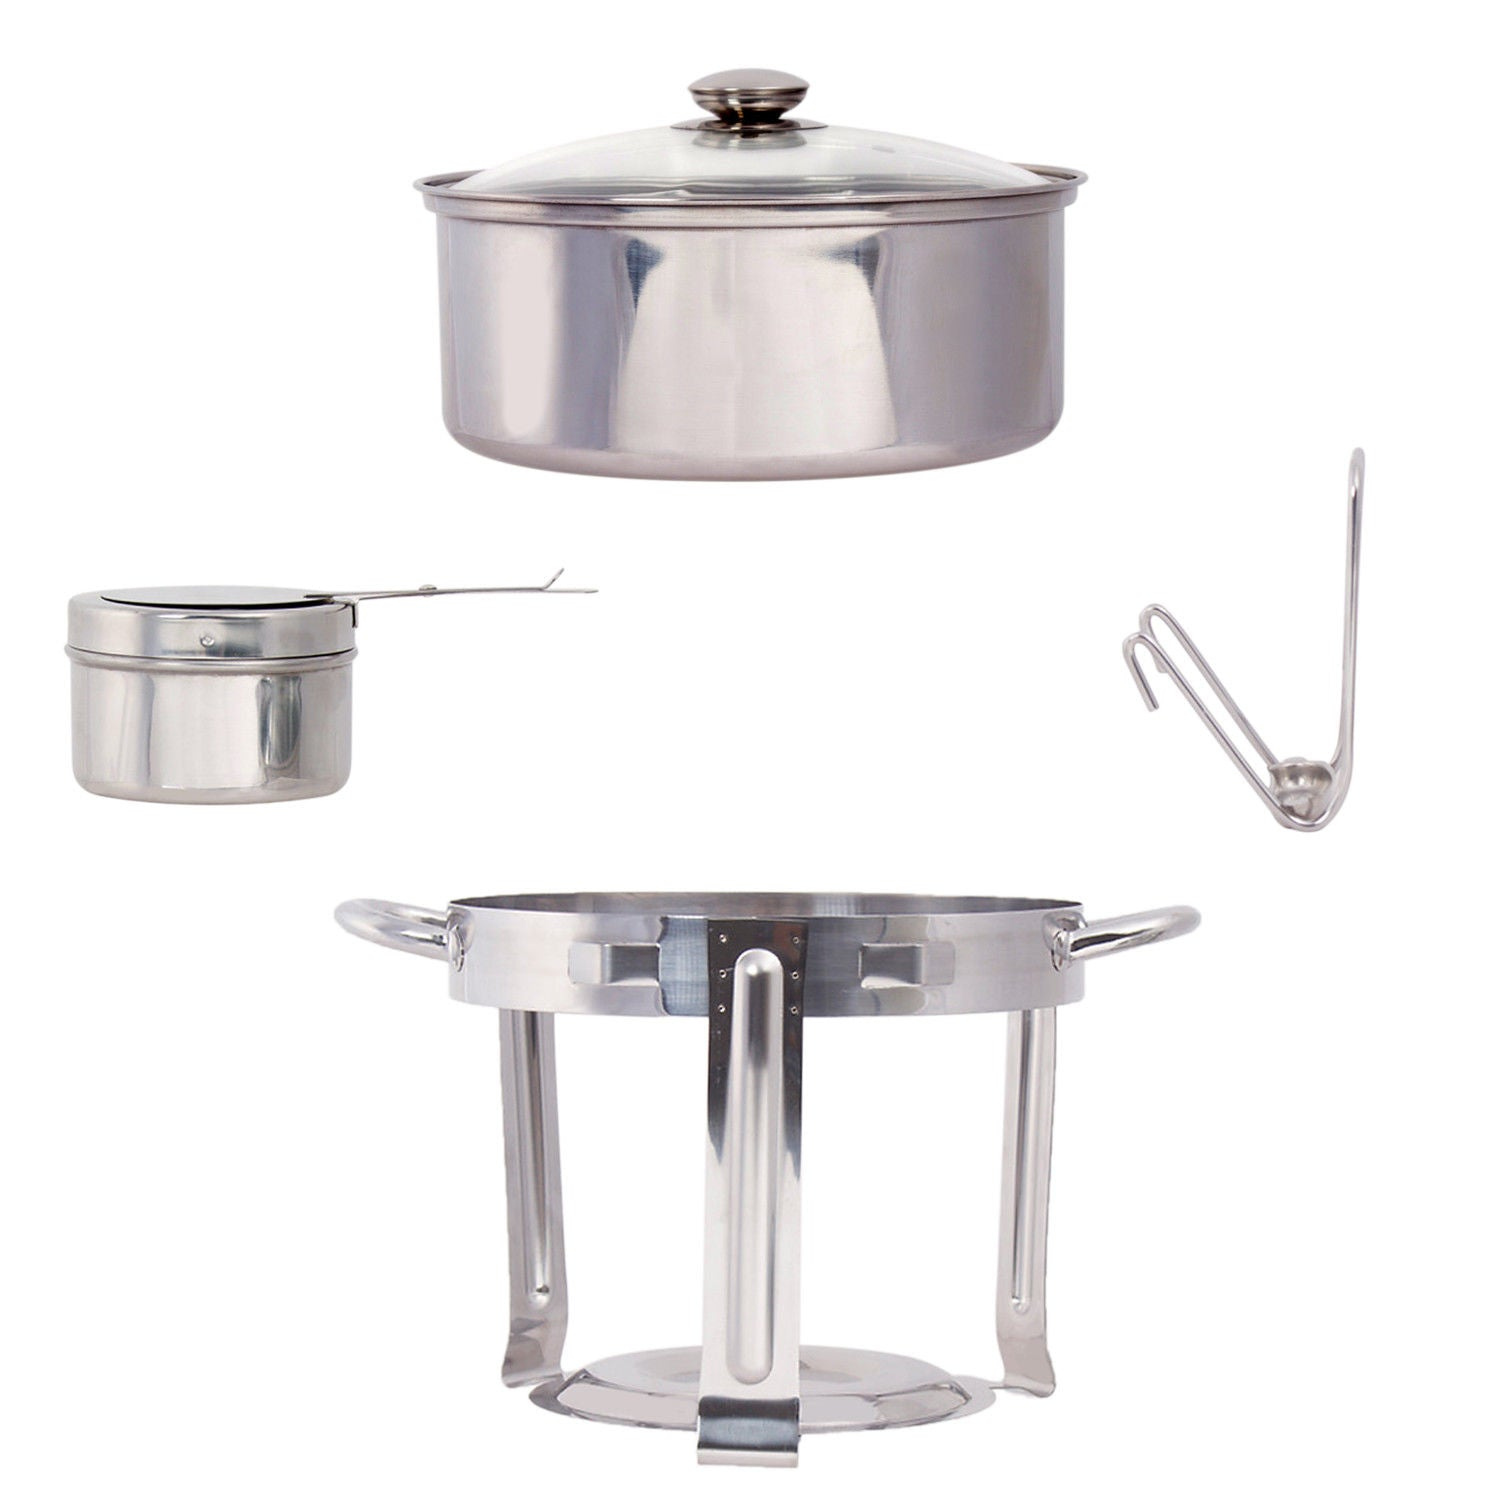 Stainless Steel Chafing Dish Set 4.5 QT Party Buffet Round Chafing Dish Pot Set